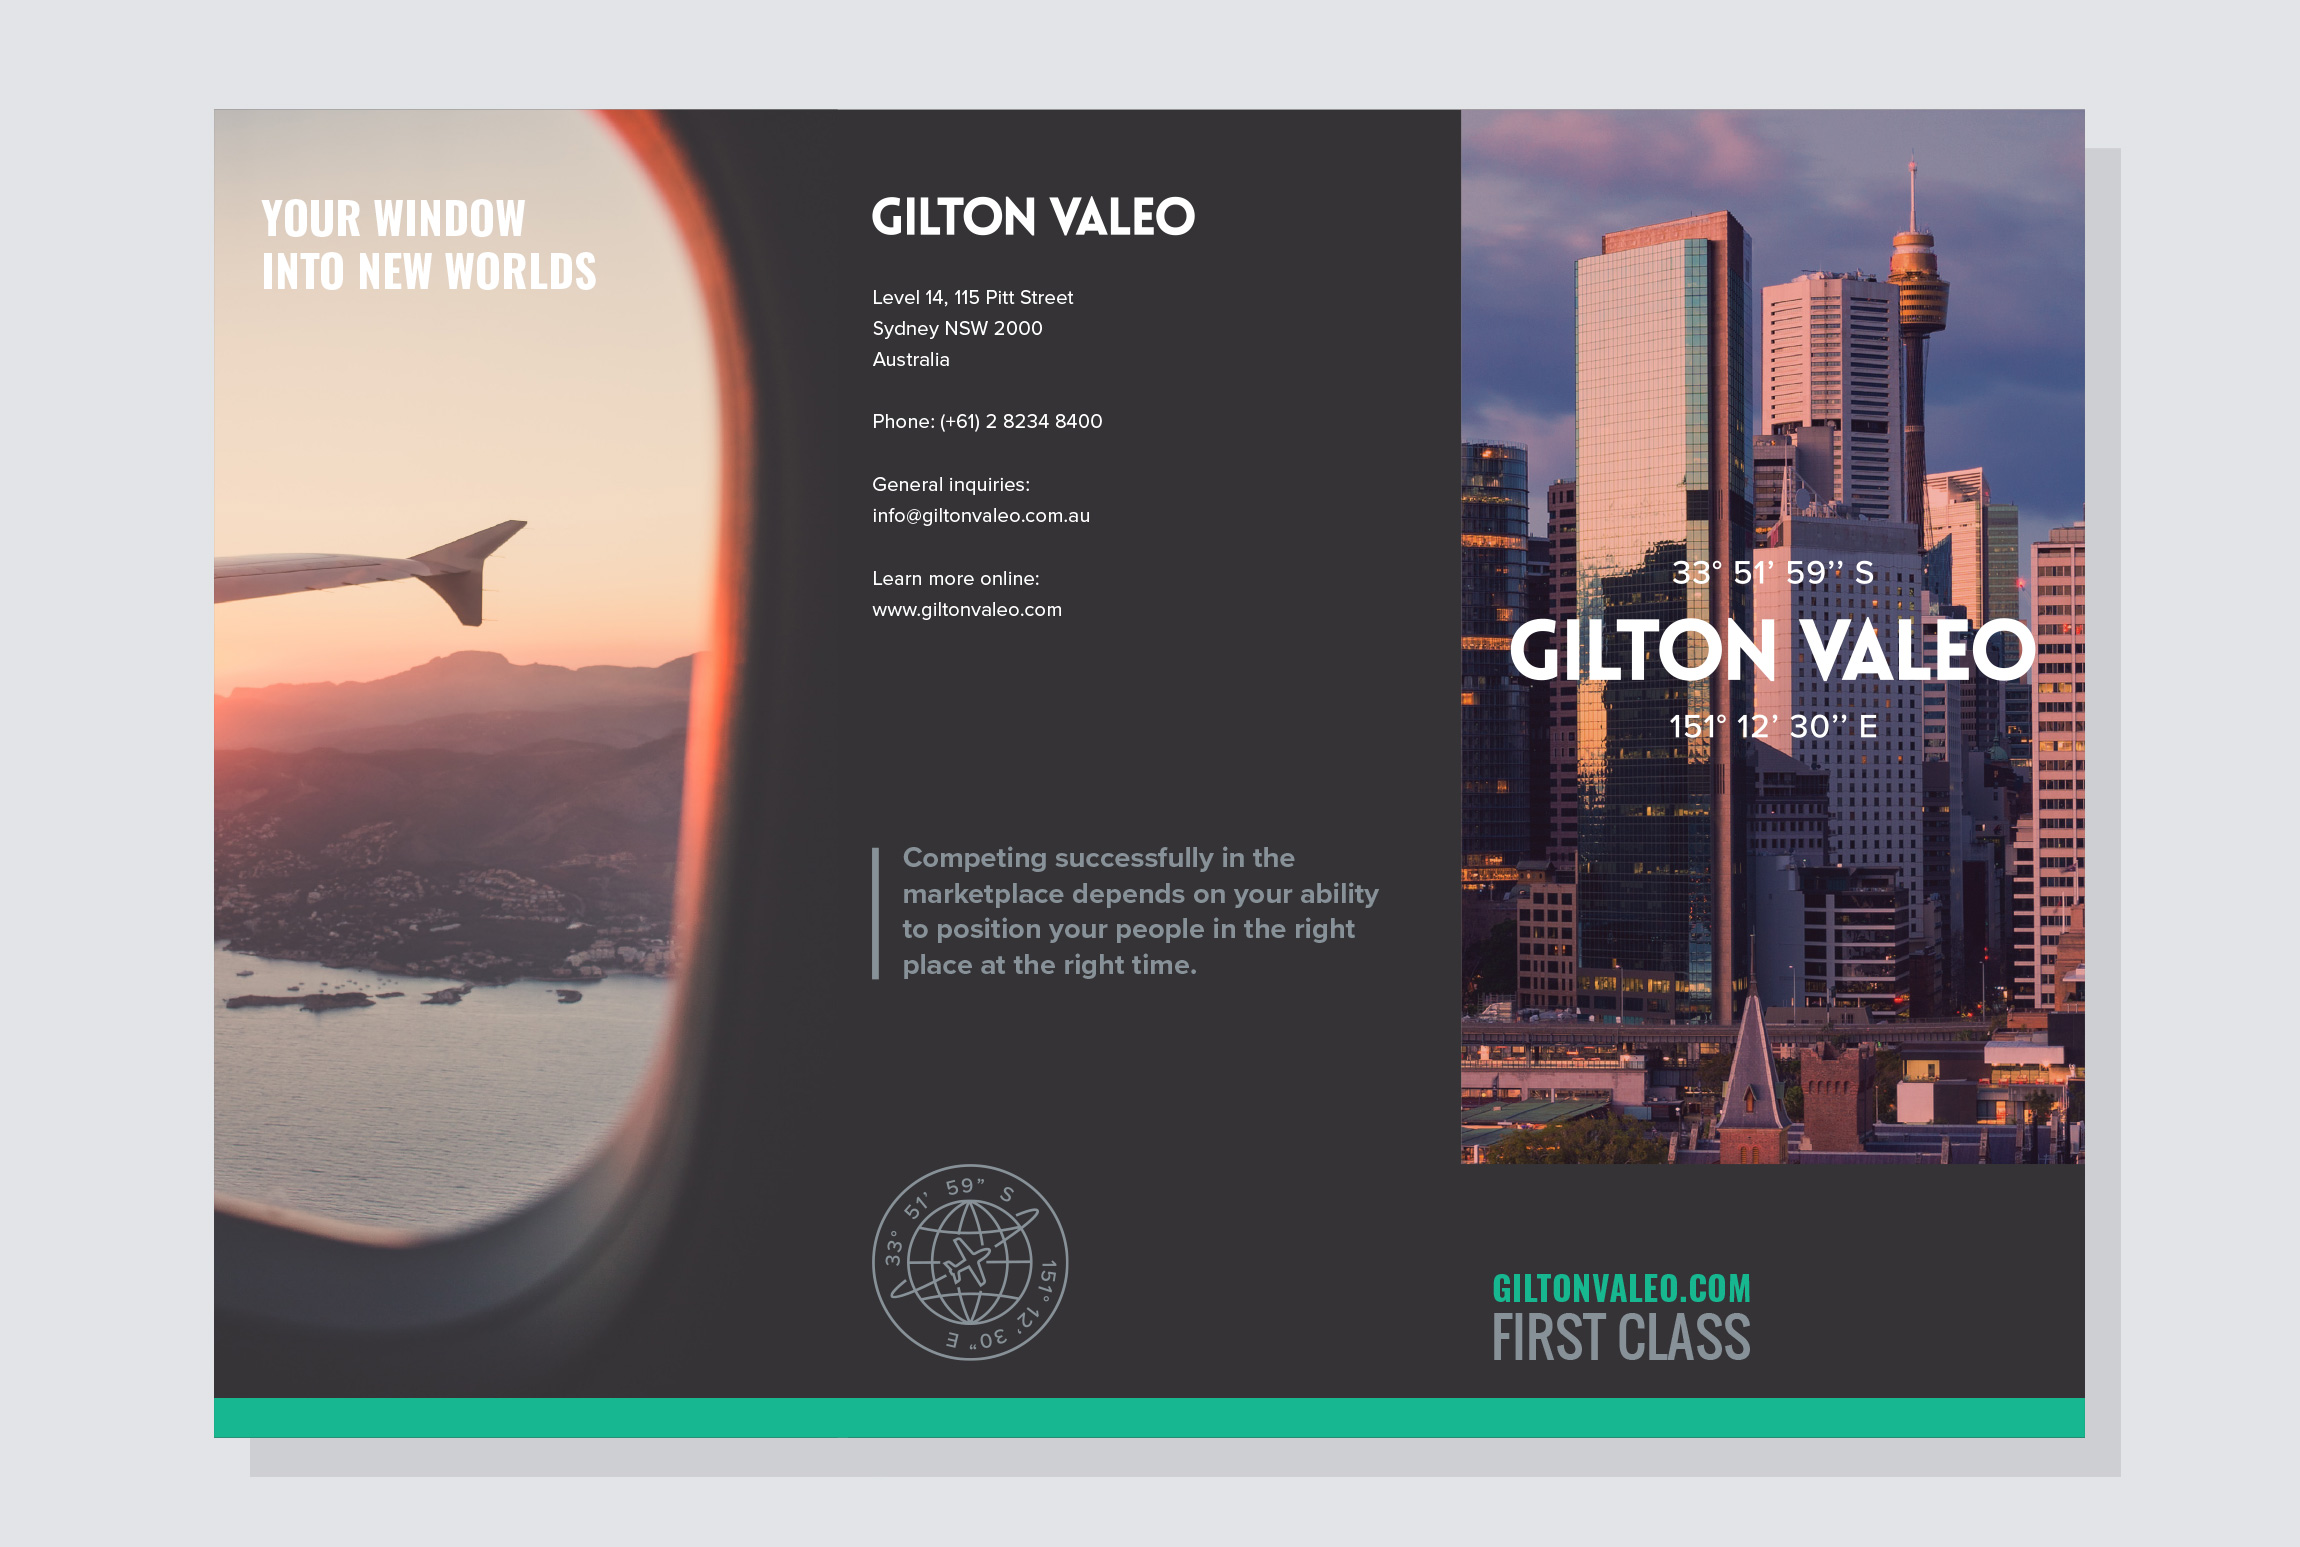 'Your window into new worlds':  Gate-fold Brochure for Gilton Valeo.